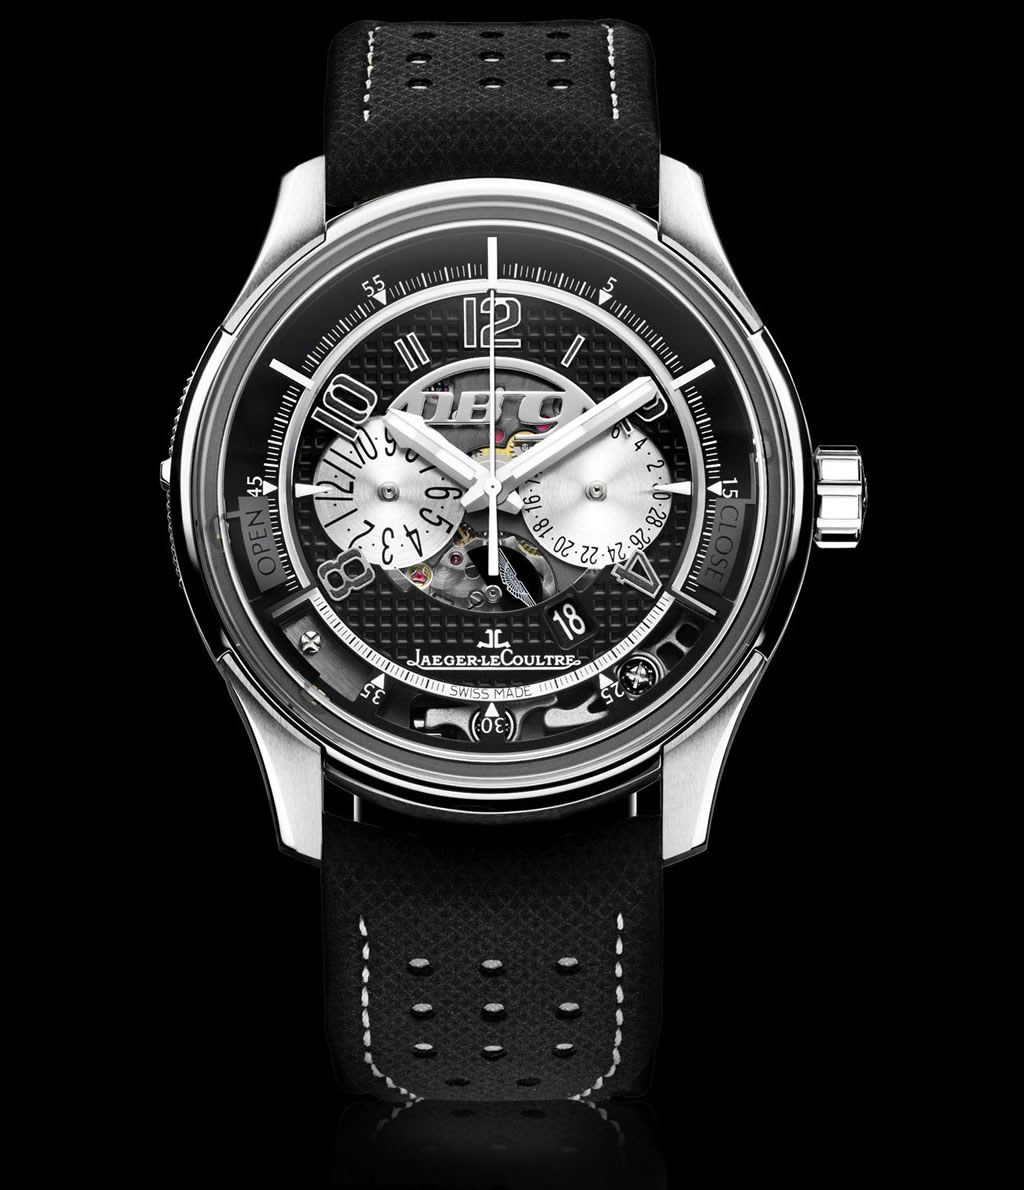 Jaeger-LeCoultre AMVOX2 DB9 Transponder